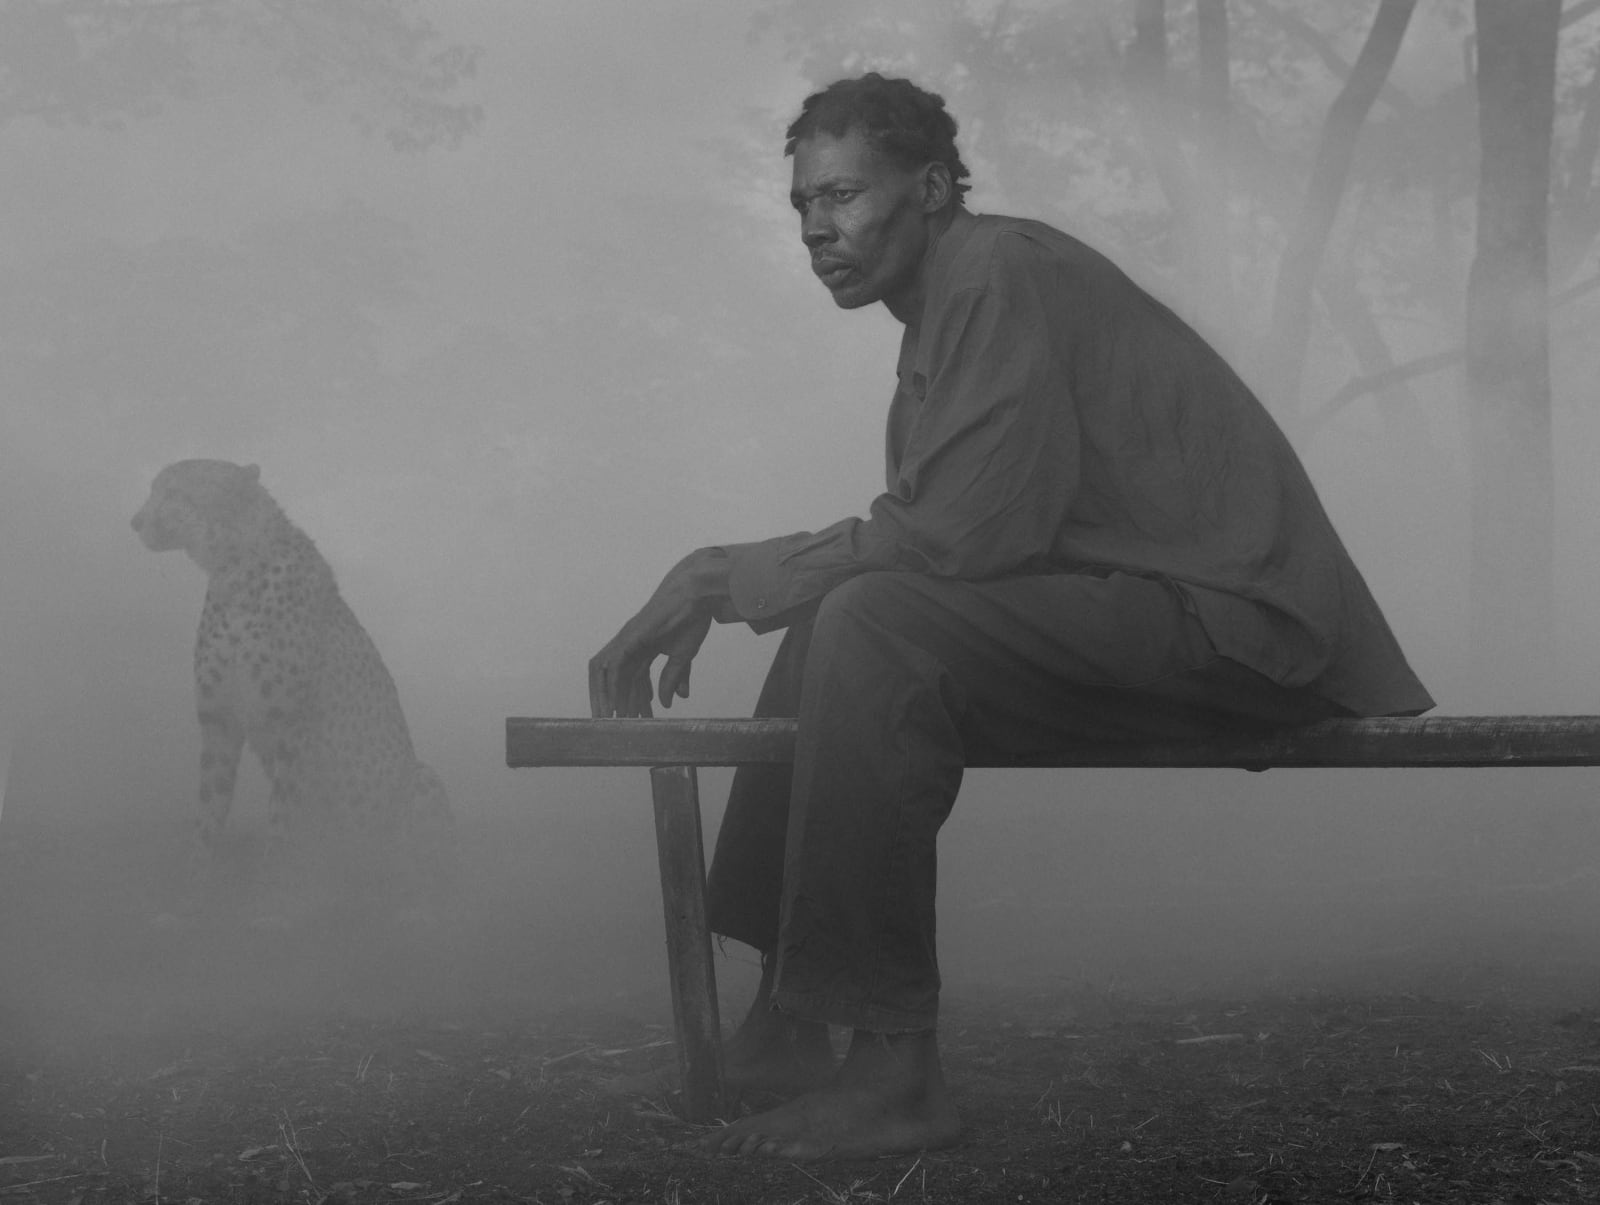 Richard sitting on bench with cheetah named Diesel behind him in fog, Zimbabwe, from the Day May Break series by Nick Brandt